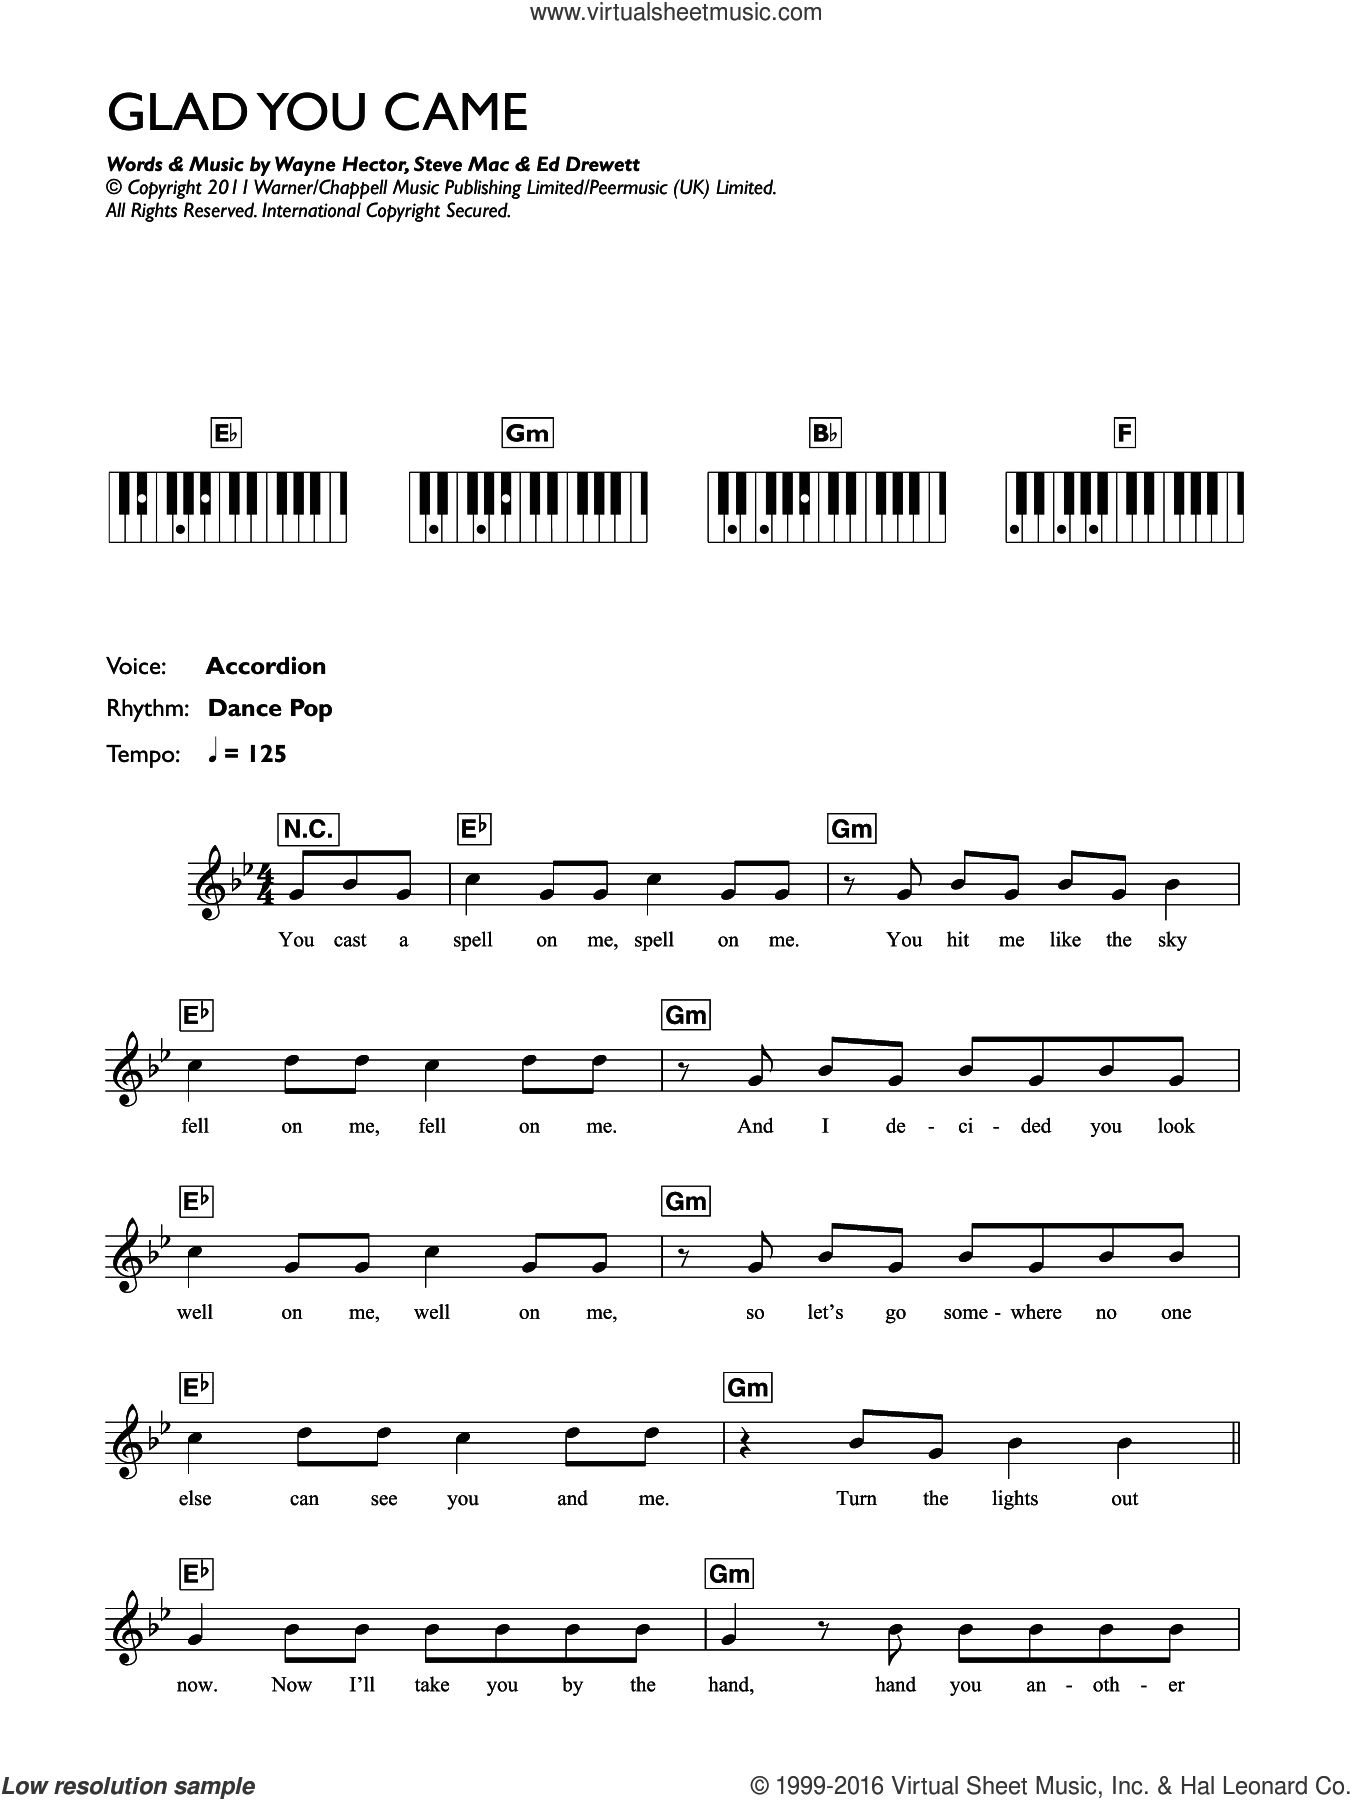 Glad You Came sheet music for piano solo (chords, lyrics, melody) by The Wanted, Ed Drewett, Steve Mac and Wayne Hector, intermediate piano (chords, lyrics, melody)